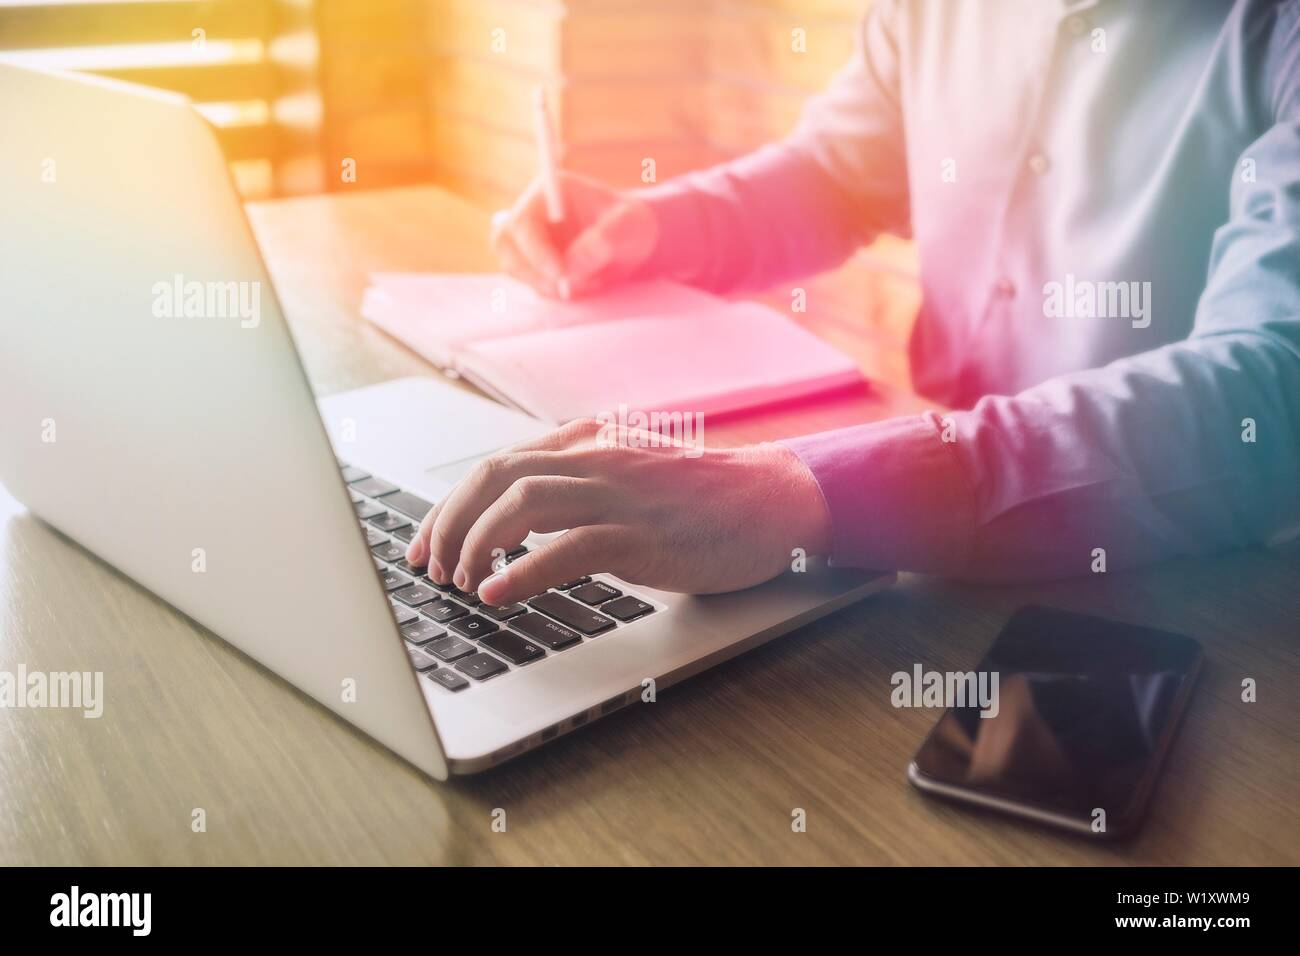 Businessman typing in information on a laptop or browsing the internet as he makes notes in a journal on the desk Stock Photo